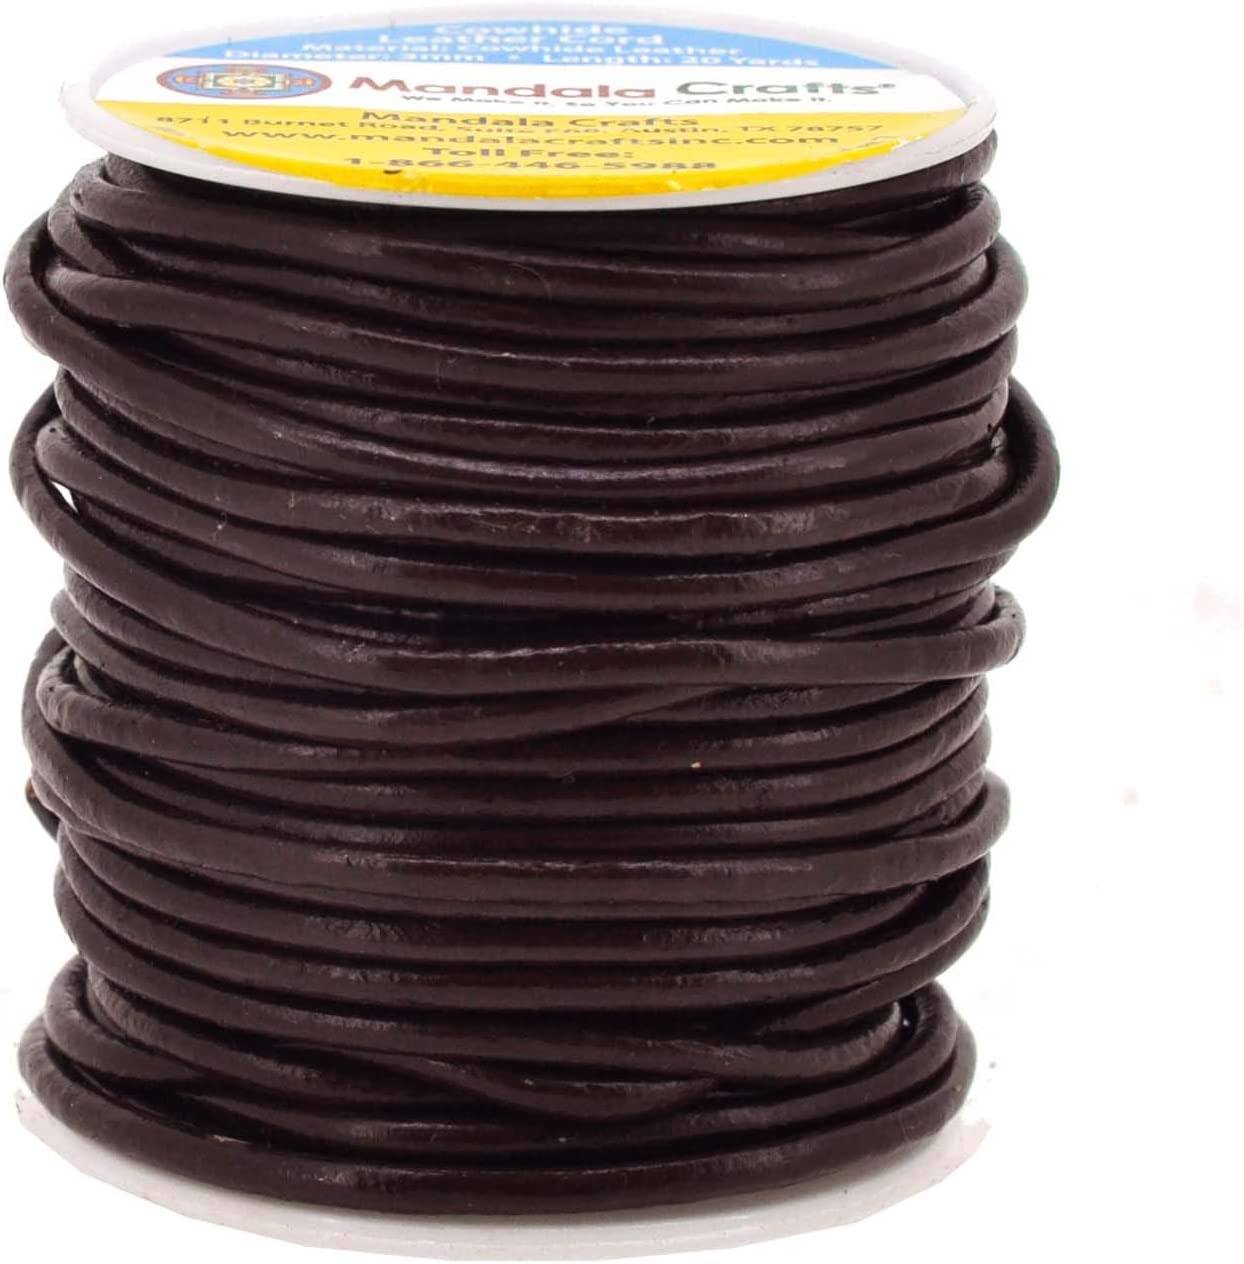 Natural Rawhide Rope for Jewelry Making Mandala Crafts Round Cowhide Genuine Leather String Cord Shoelaces Kumihimo Braiding 1mm, Brown